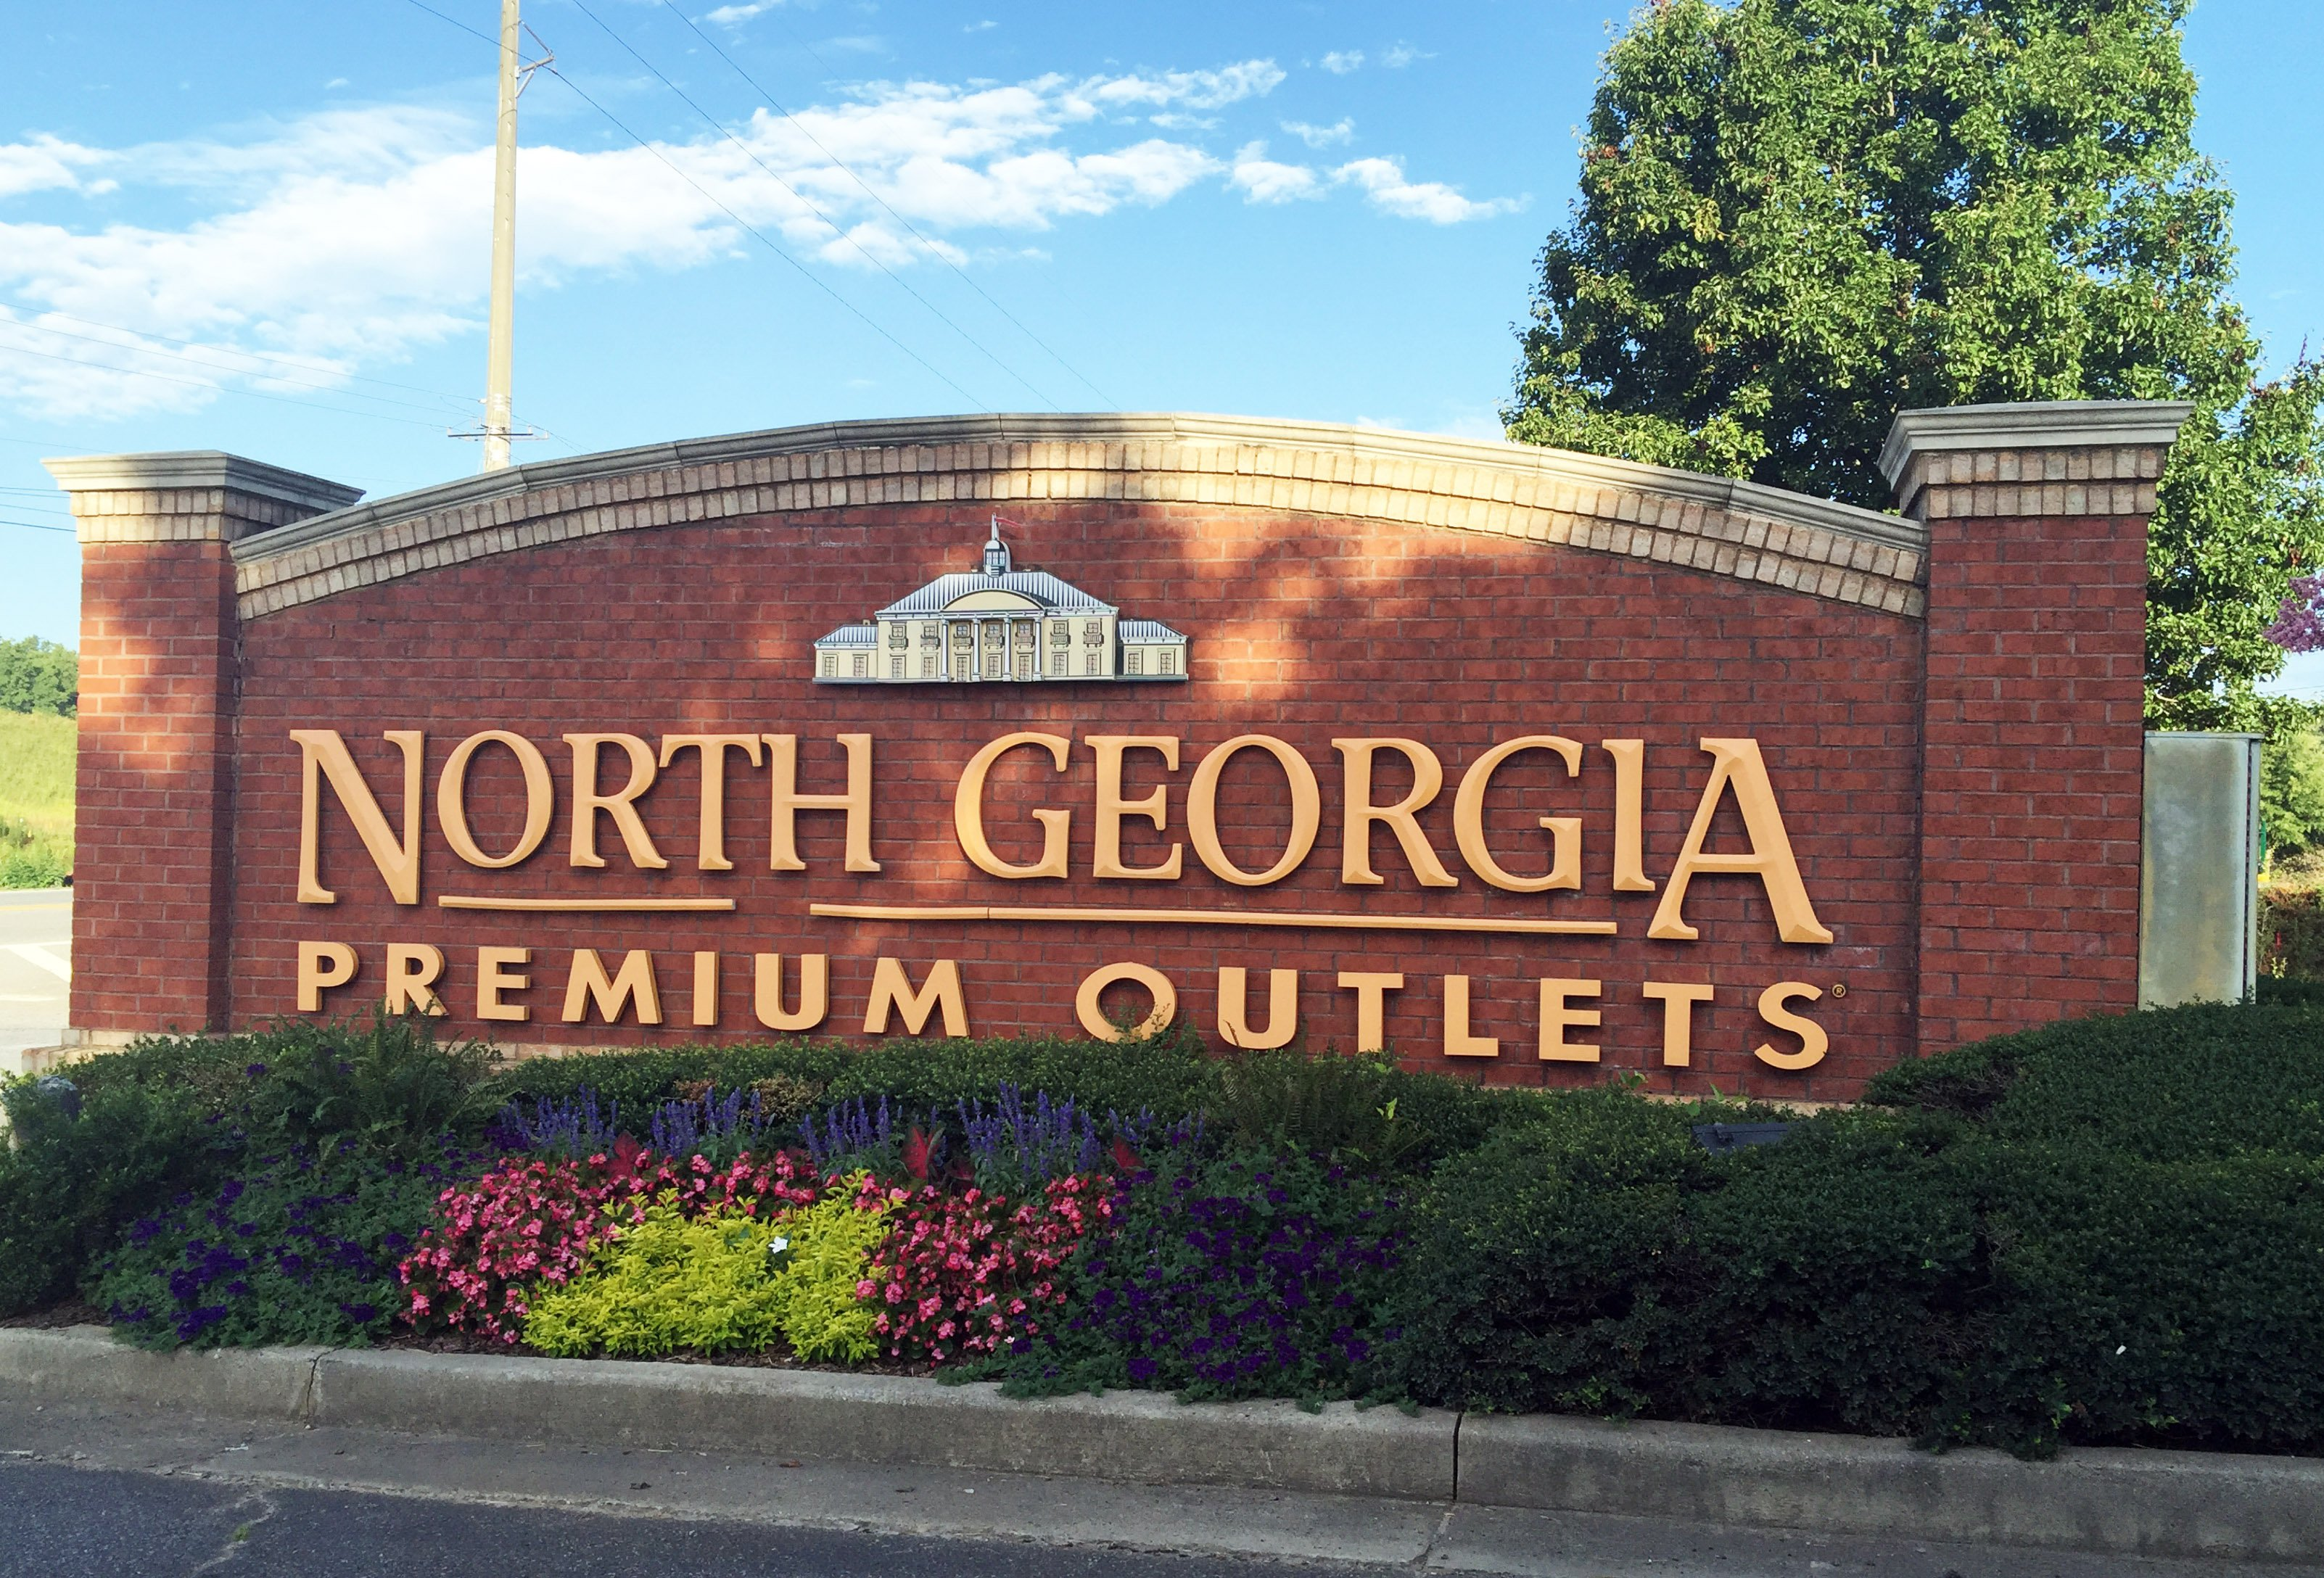 North Georgia Premium Outlets